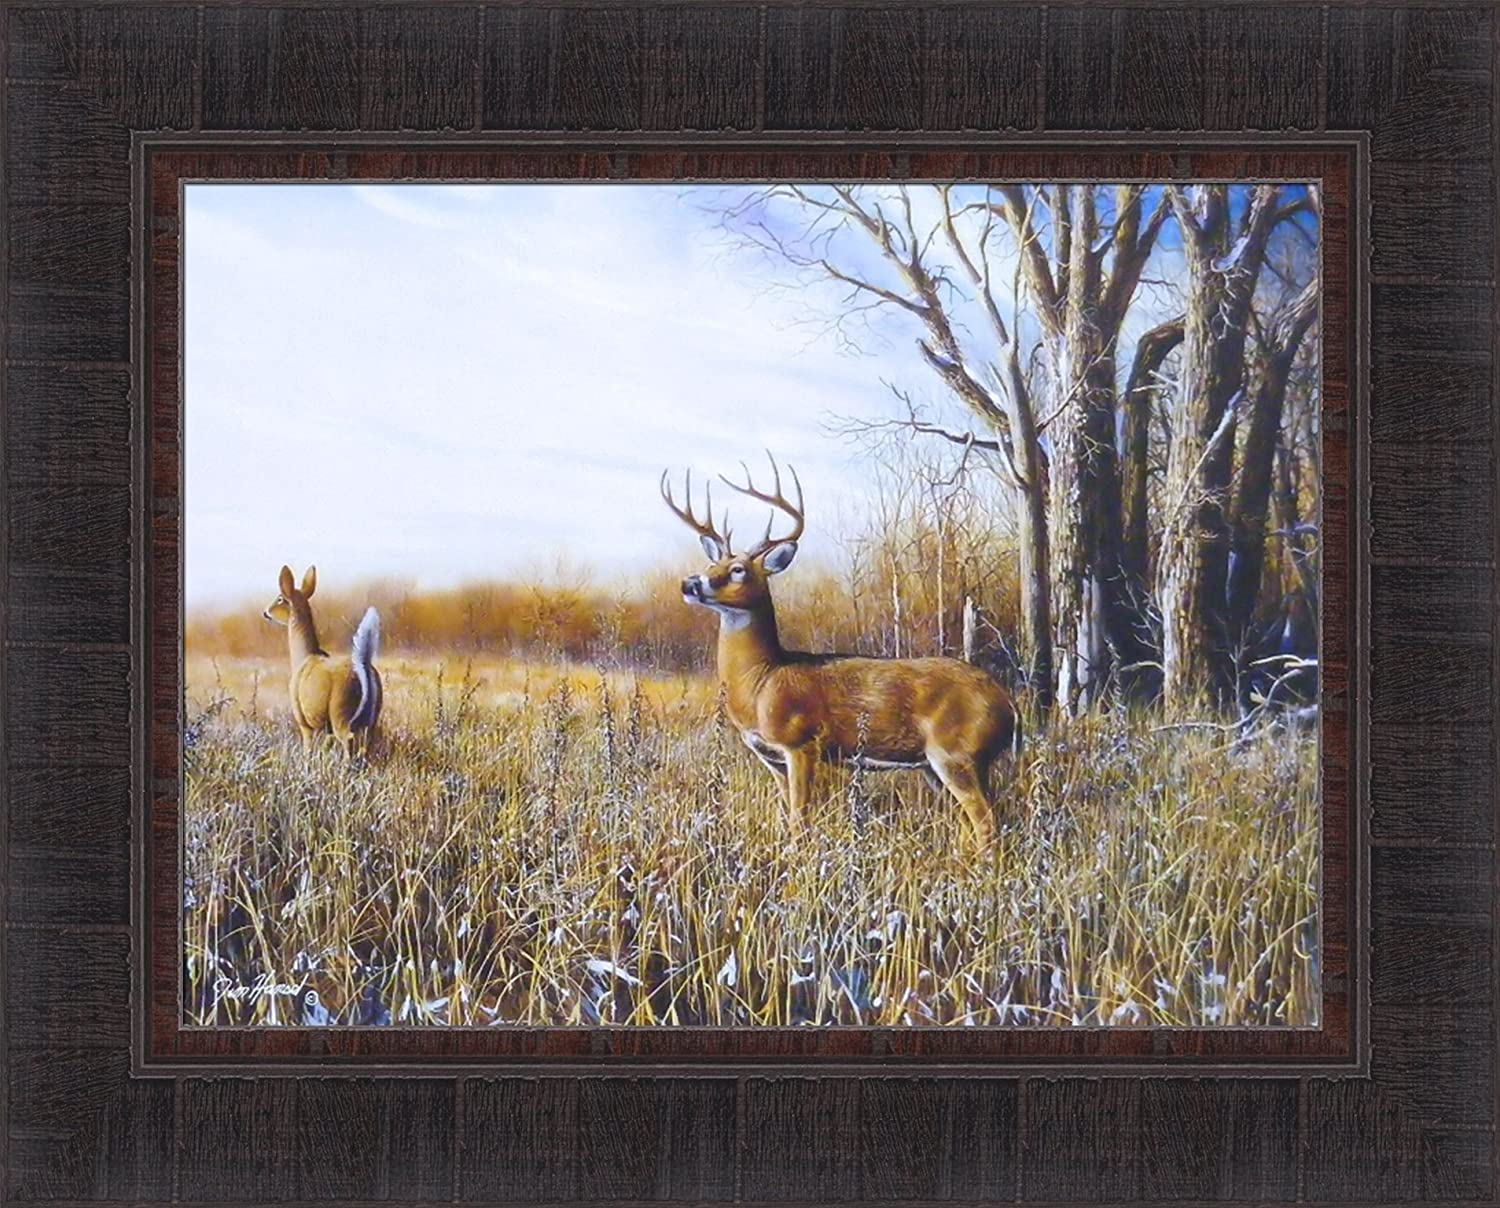 Breaking Cover by Jim Hansel 17x21 Buck Deer Field Online limited product Doe Whitetail Quantity limited